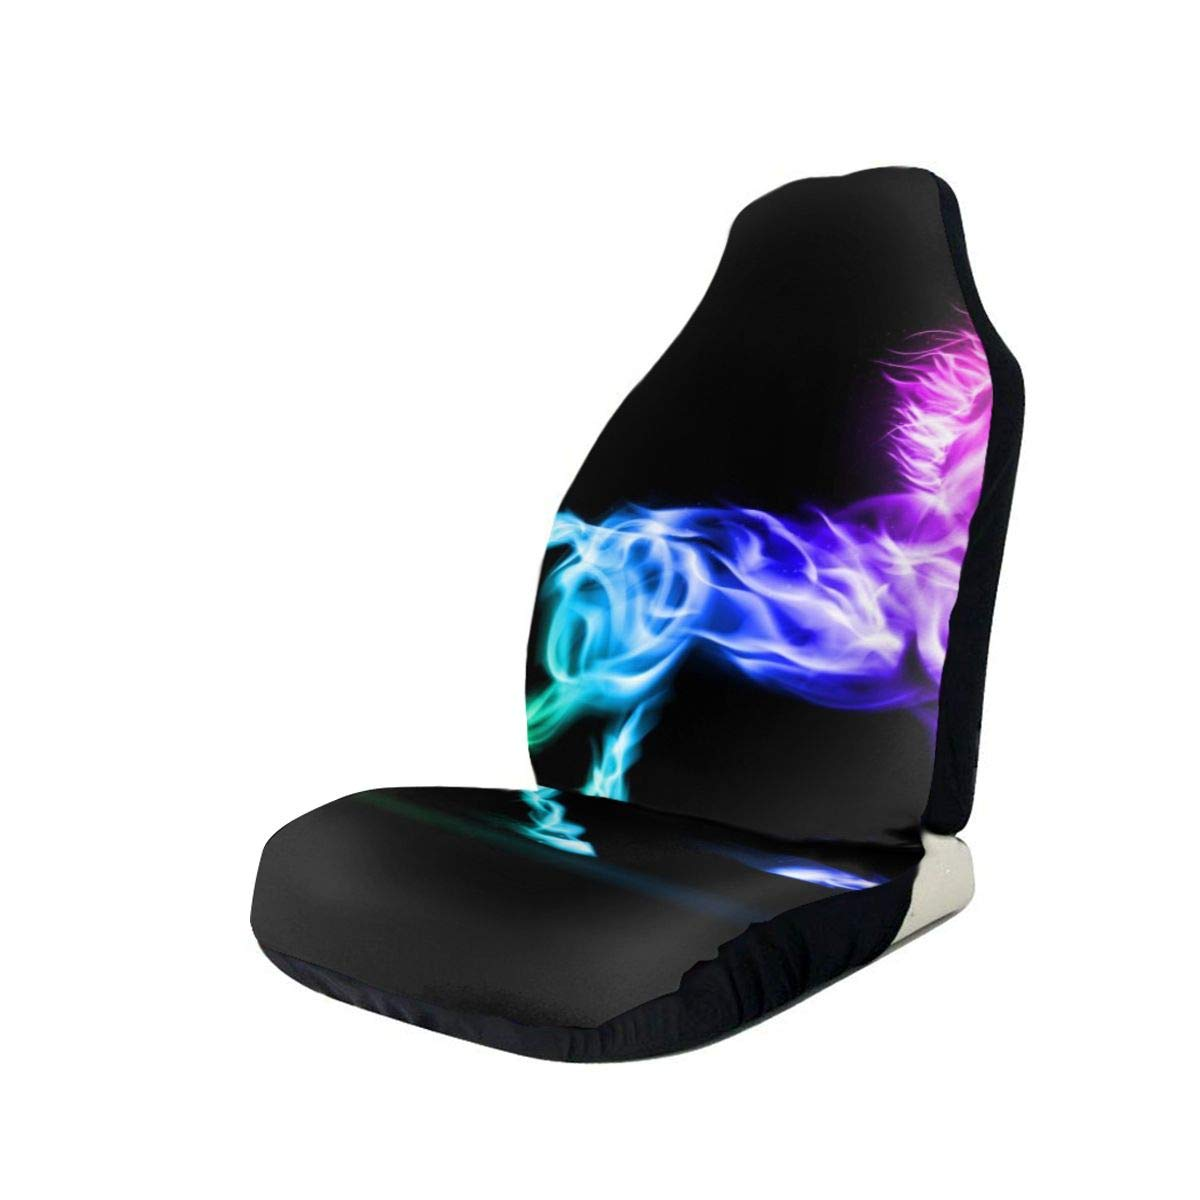 Car Seat Cover, Universal Car Seat Covers, Amazing Fire Unicorn Seat Covers Universal for Front Seat, Automobile Seats Protector Fits Most Car Trucks SUV